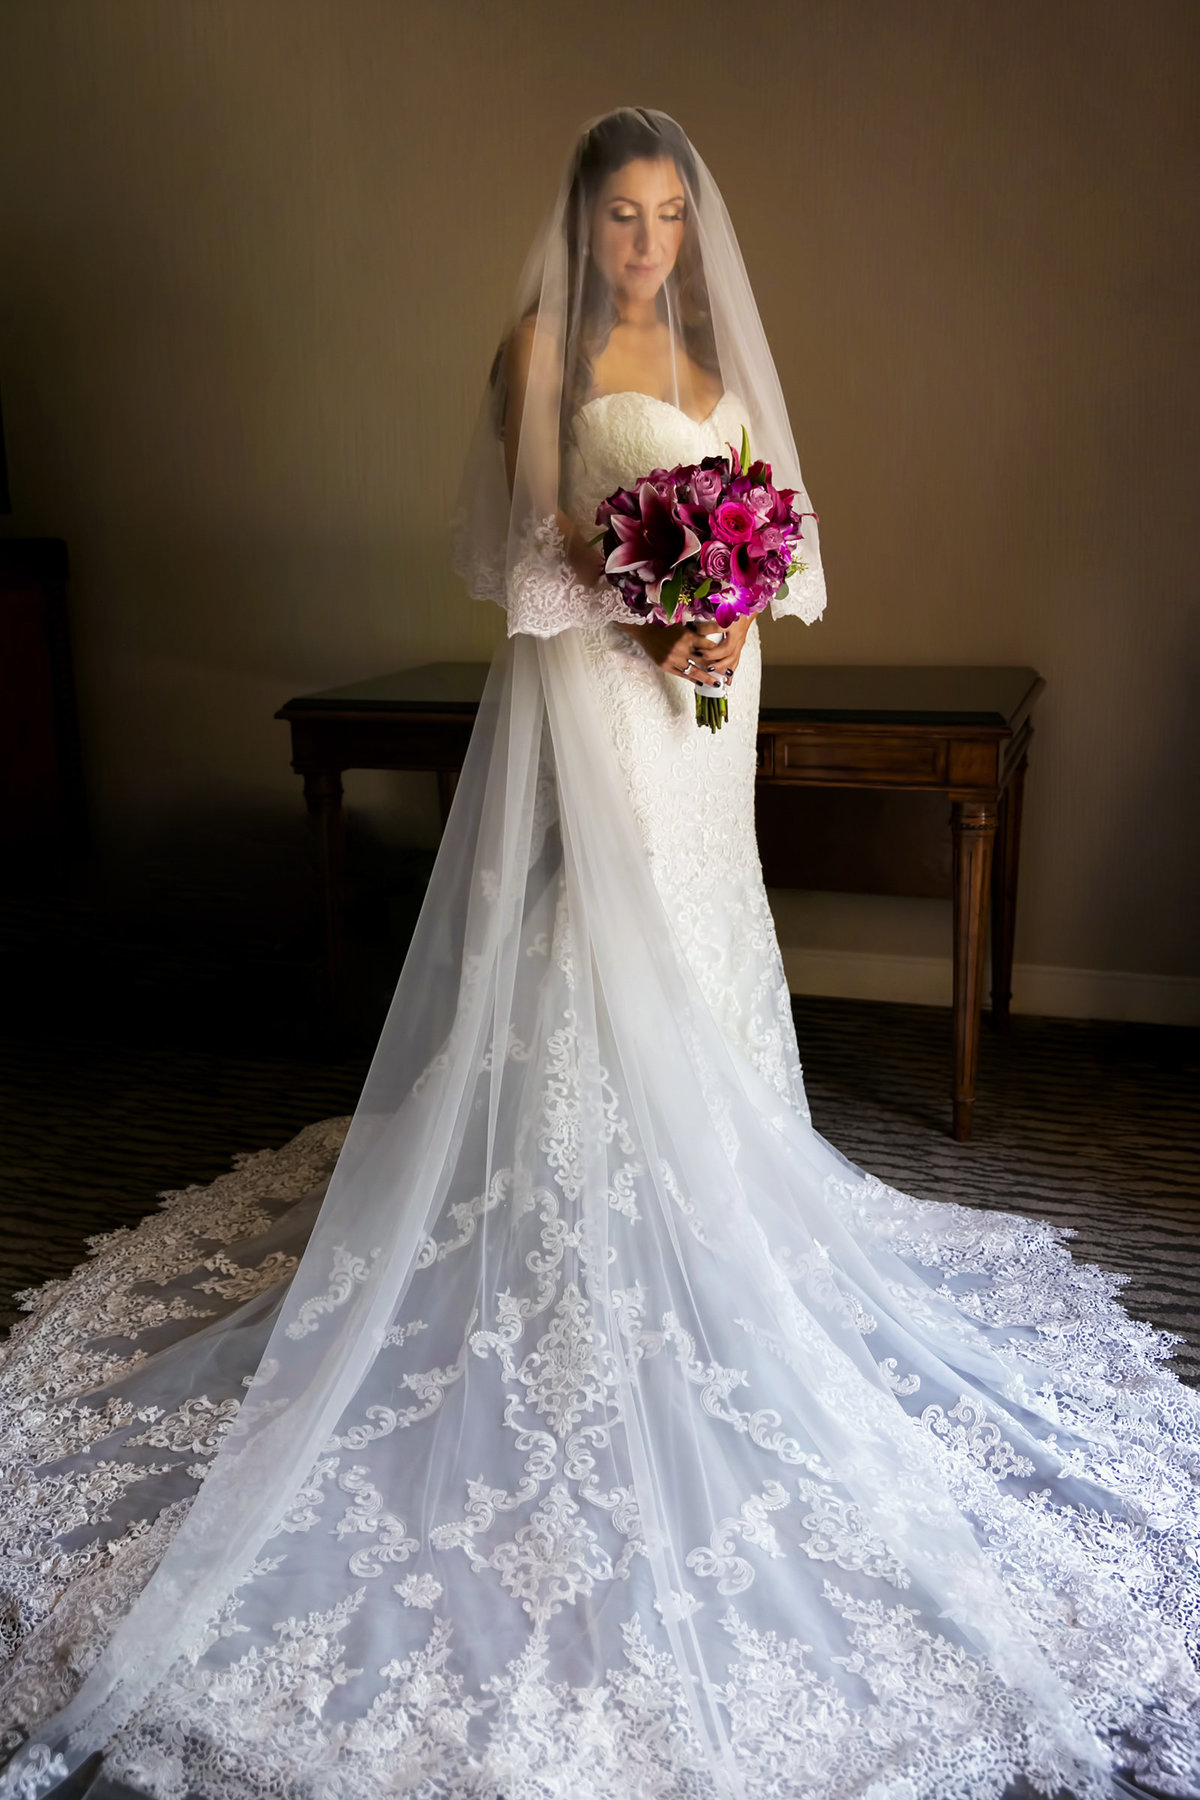 027-fess-parker-doubletree-resort-wedding-photos-jacqueline-michael